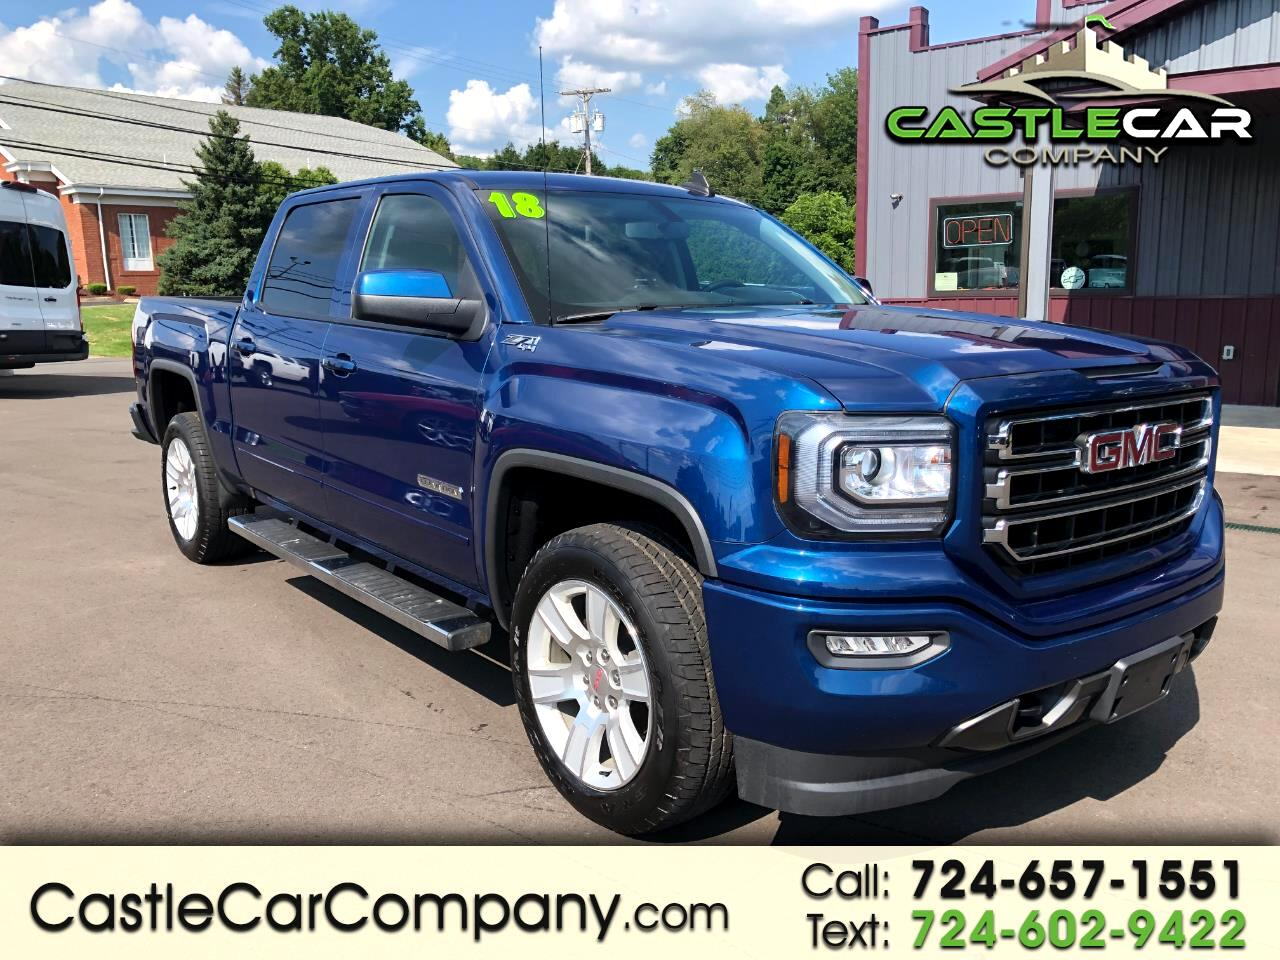 2018 GMC Sierra 1500 4WD CREW CAB Z71 ELEVATION PACKAGE